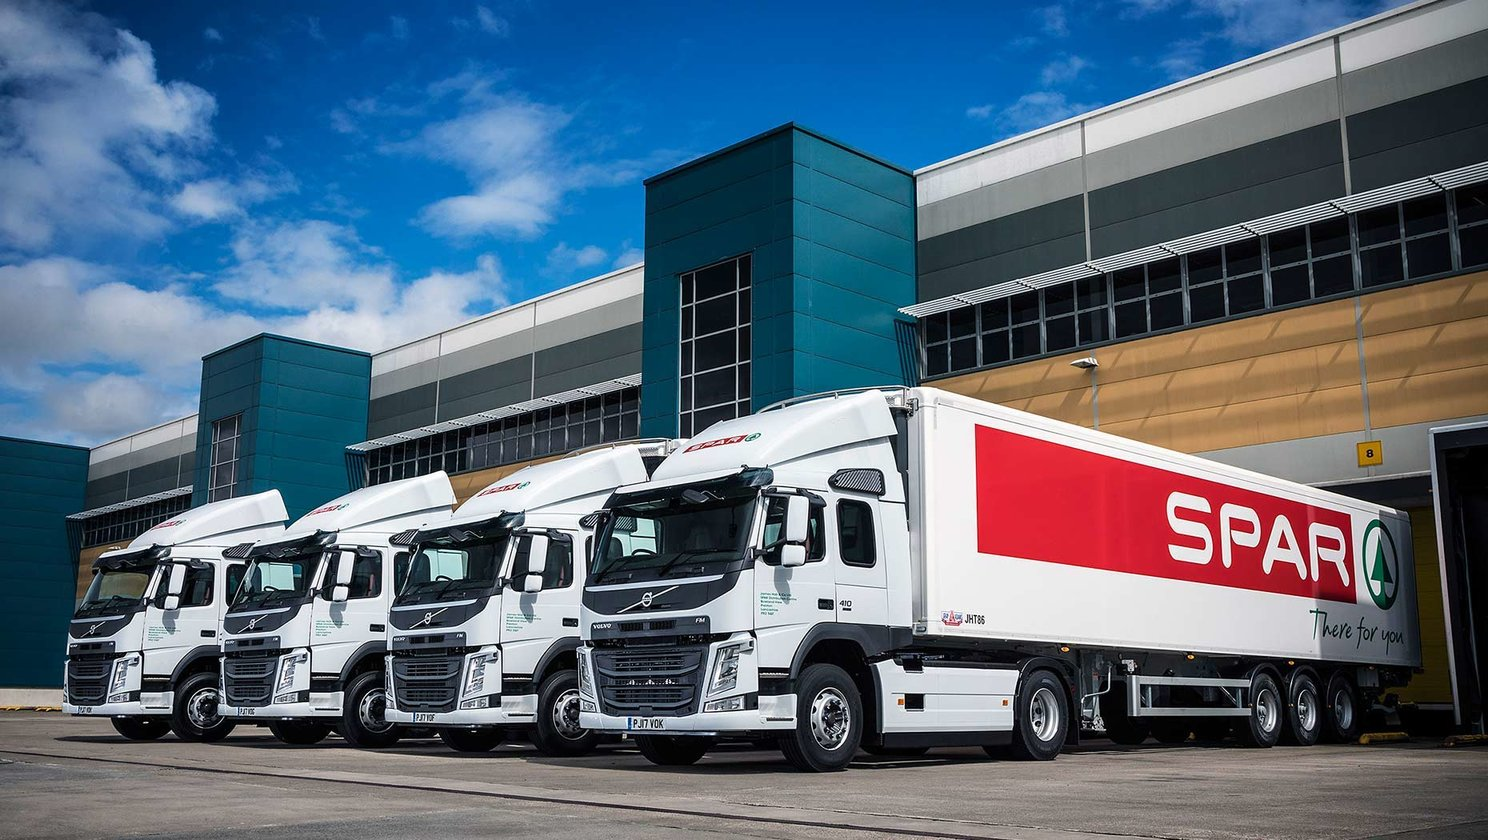 Eight new distribution trucks for James Hall & CO. Ltd.